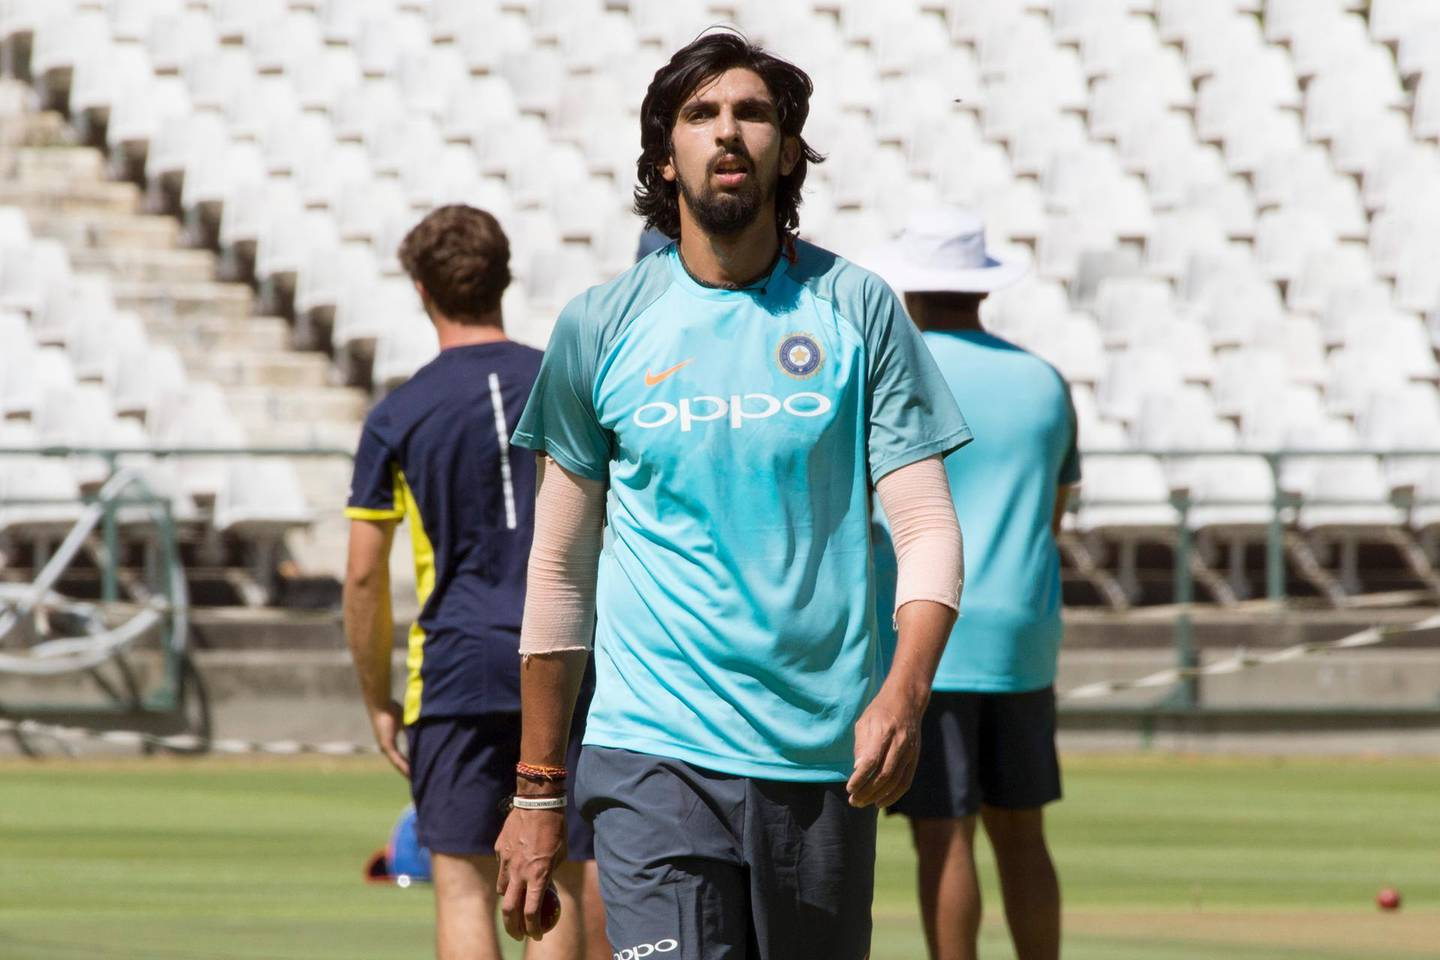 India's bowler Ishant Sharma, walks up the crease as he takes part in training session at the Newlands Cricket ground on January 3, 2018, in Cape Town, prior to the first of three cricket tests matches between South Africa and India. / AFP PHOTO / RODGER BOSCH